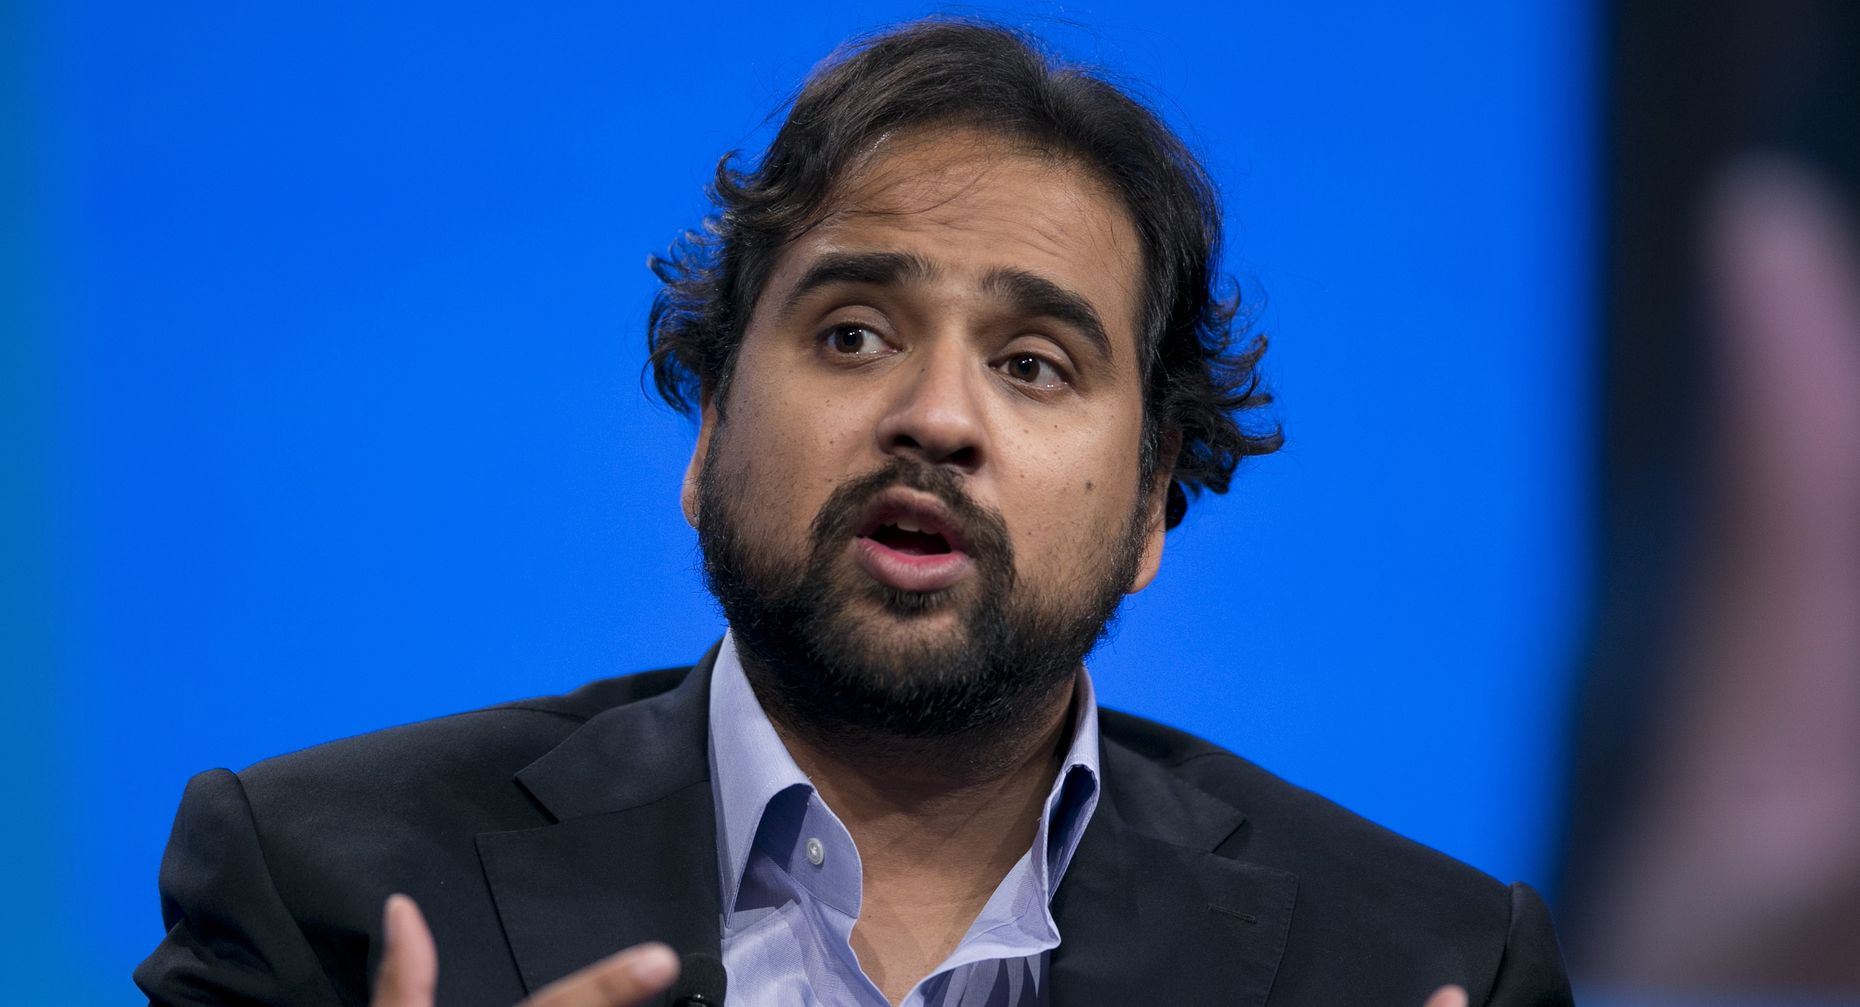 Jawbone CEO Hosain Rahman. Photo by Bloomberg.